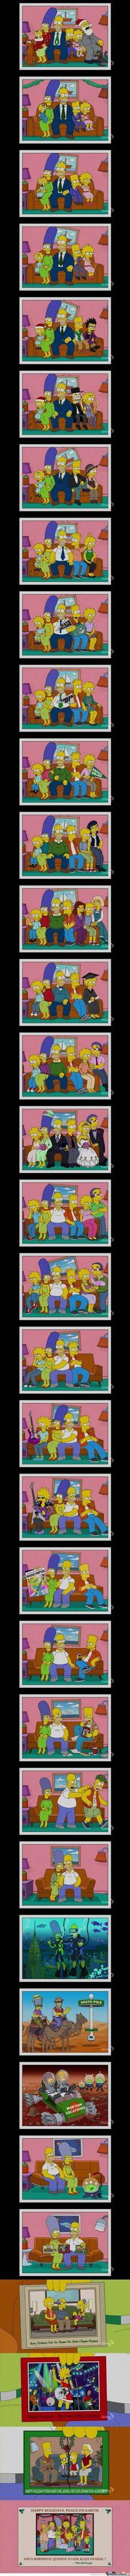 The Simpsons Timeline.........I've MAYBE seen ONE episode...but I know enough about the characters to appreciate the cleverness of this